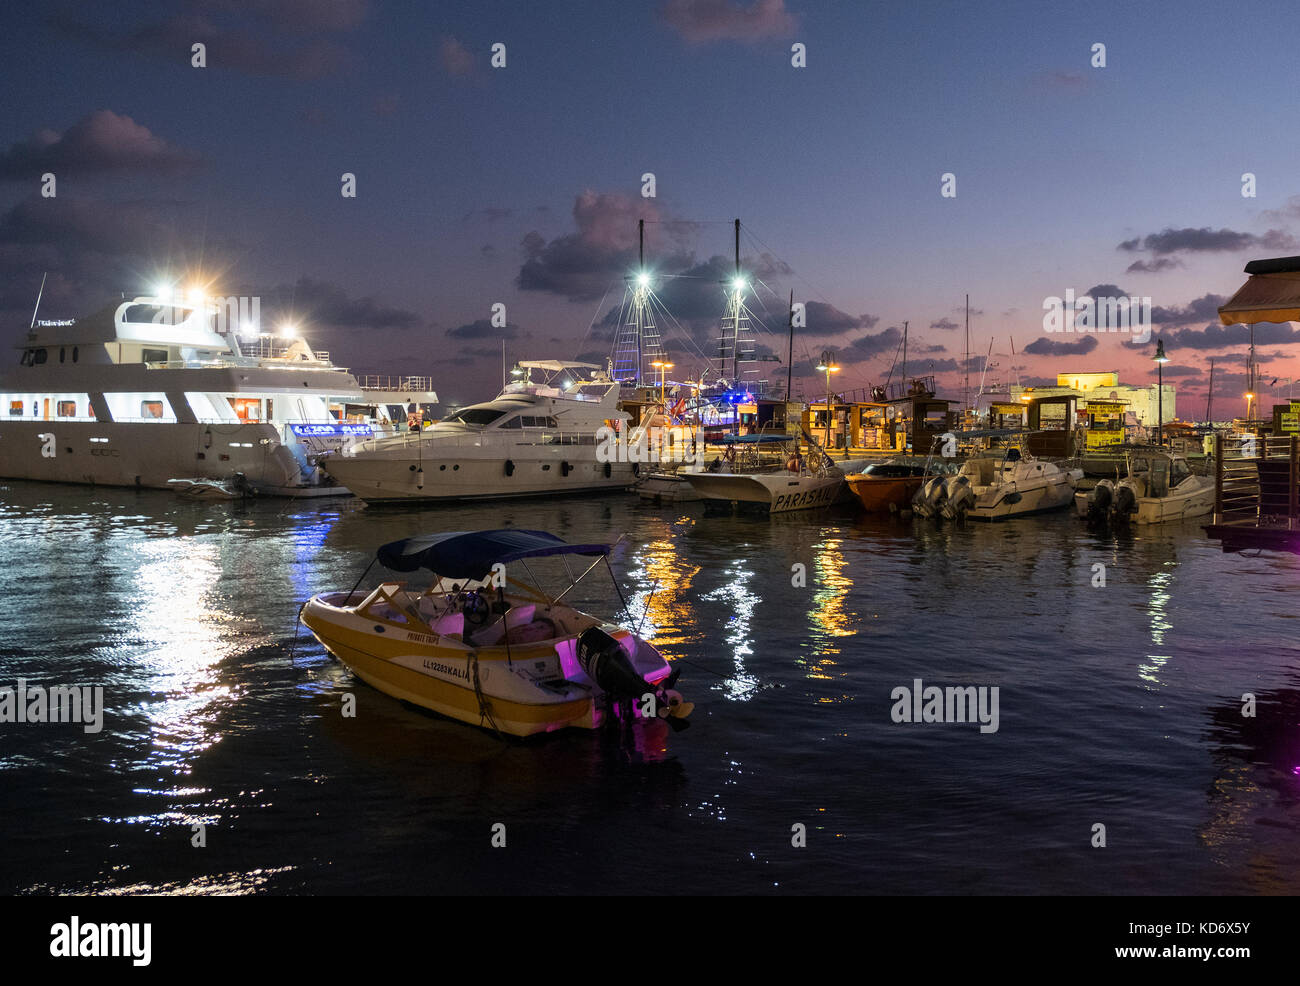 Fishing boats and pleasure craft moored in Paphos Harbour, Kate Paphos, Cyprus. Stock Photo